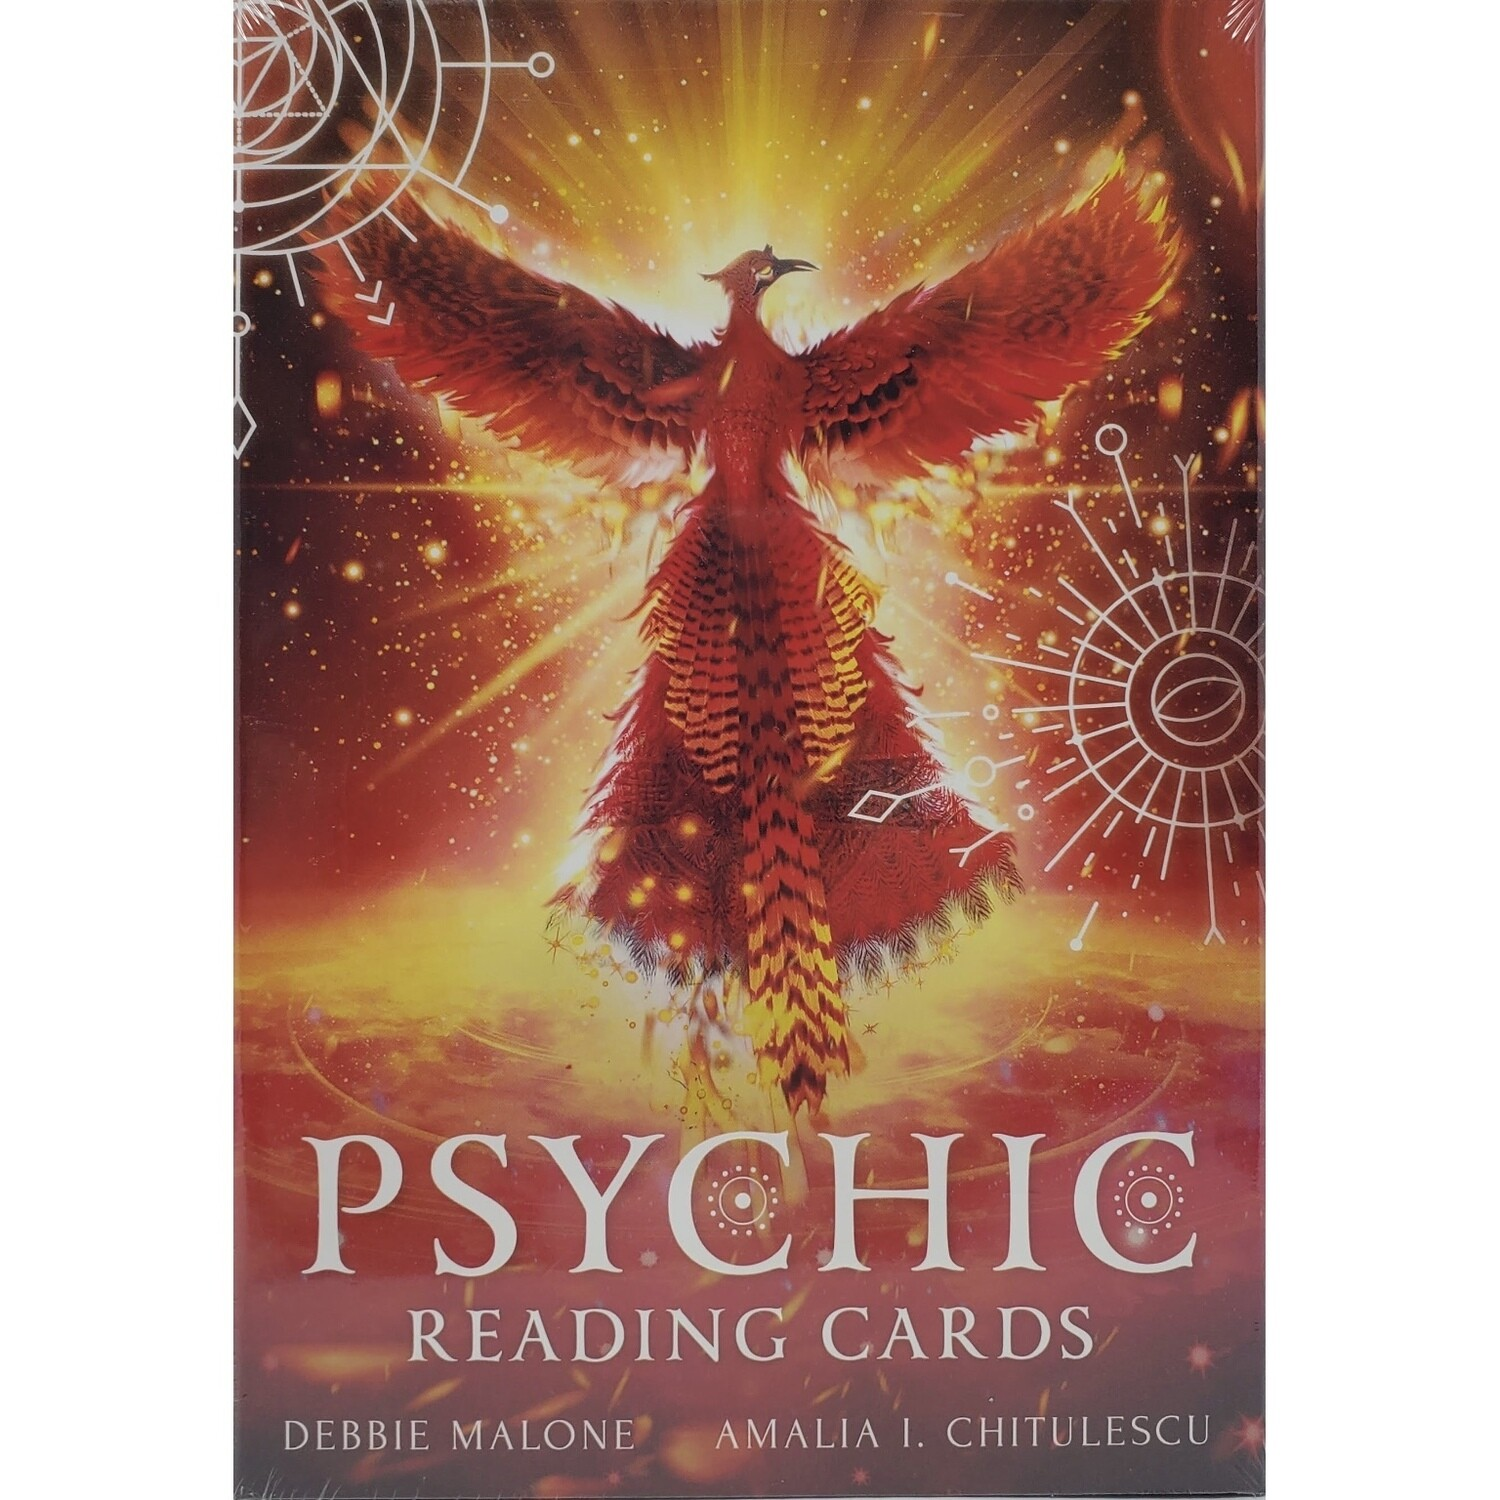 PSYCHIC READING CARDS